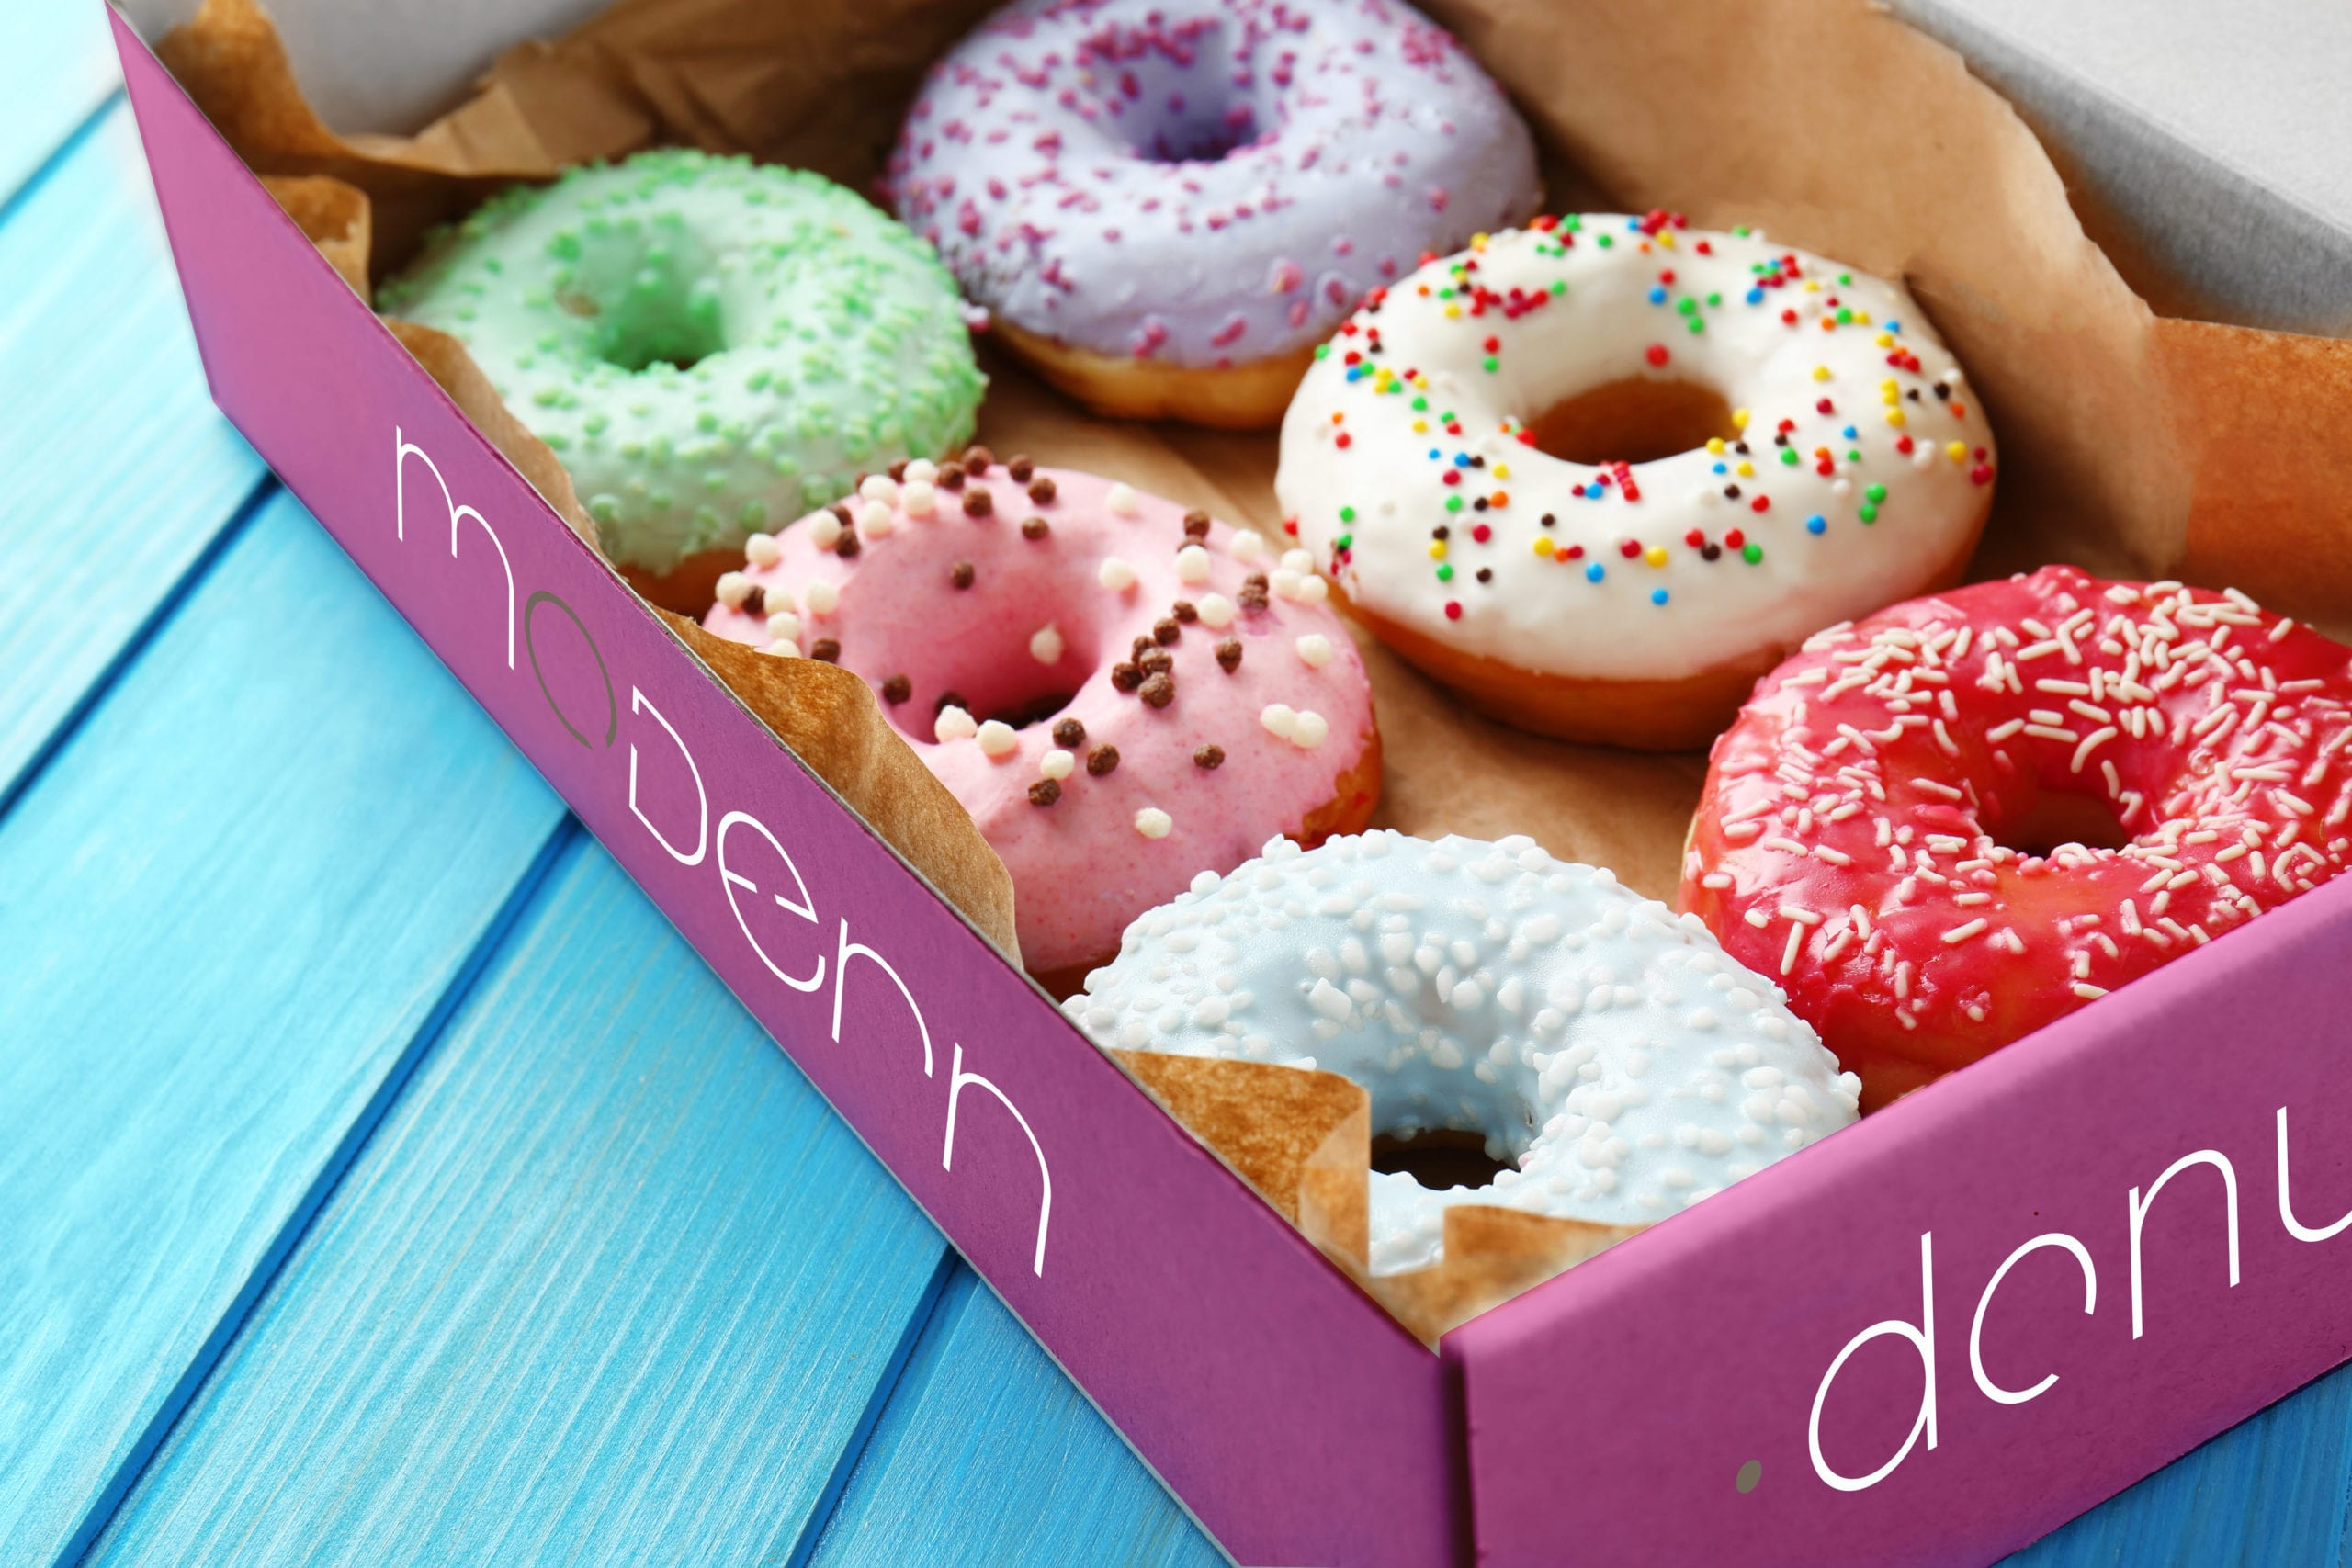 A half dozen delicious donuts by Modern Donut, branding by Canyon Creative